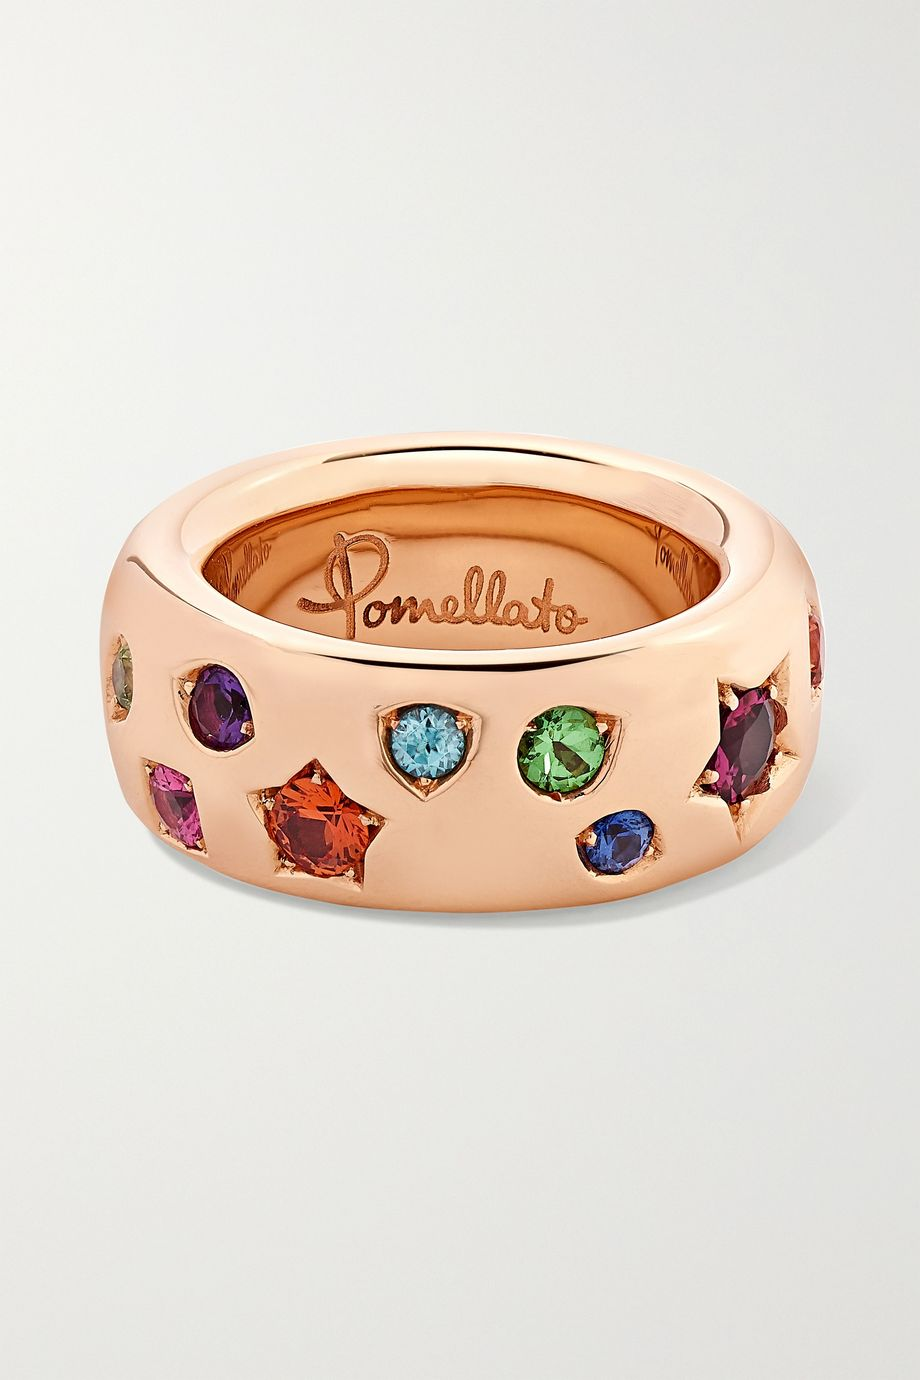 Pomellato Iconica 18-karat rose gold multi-stone ring